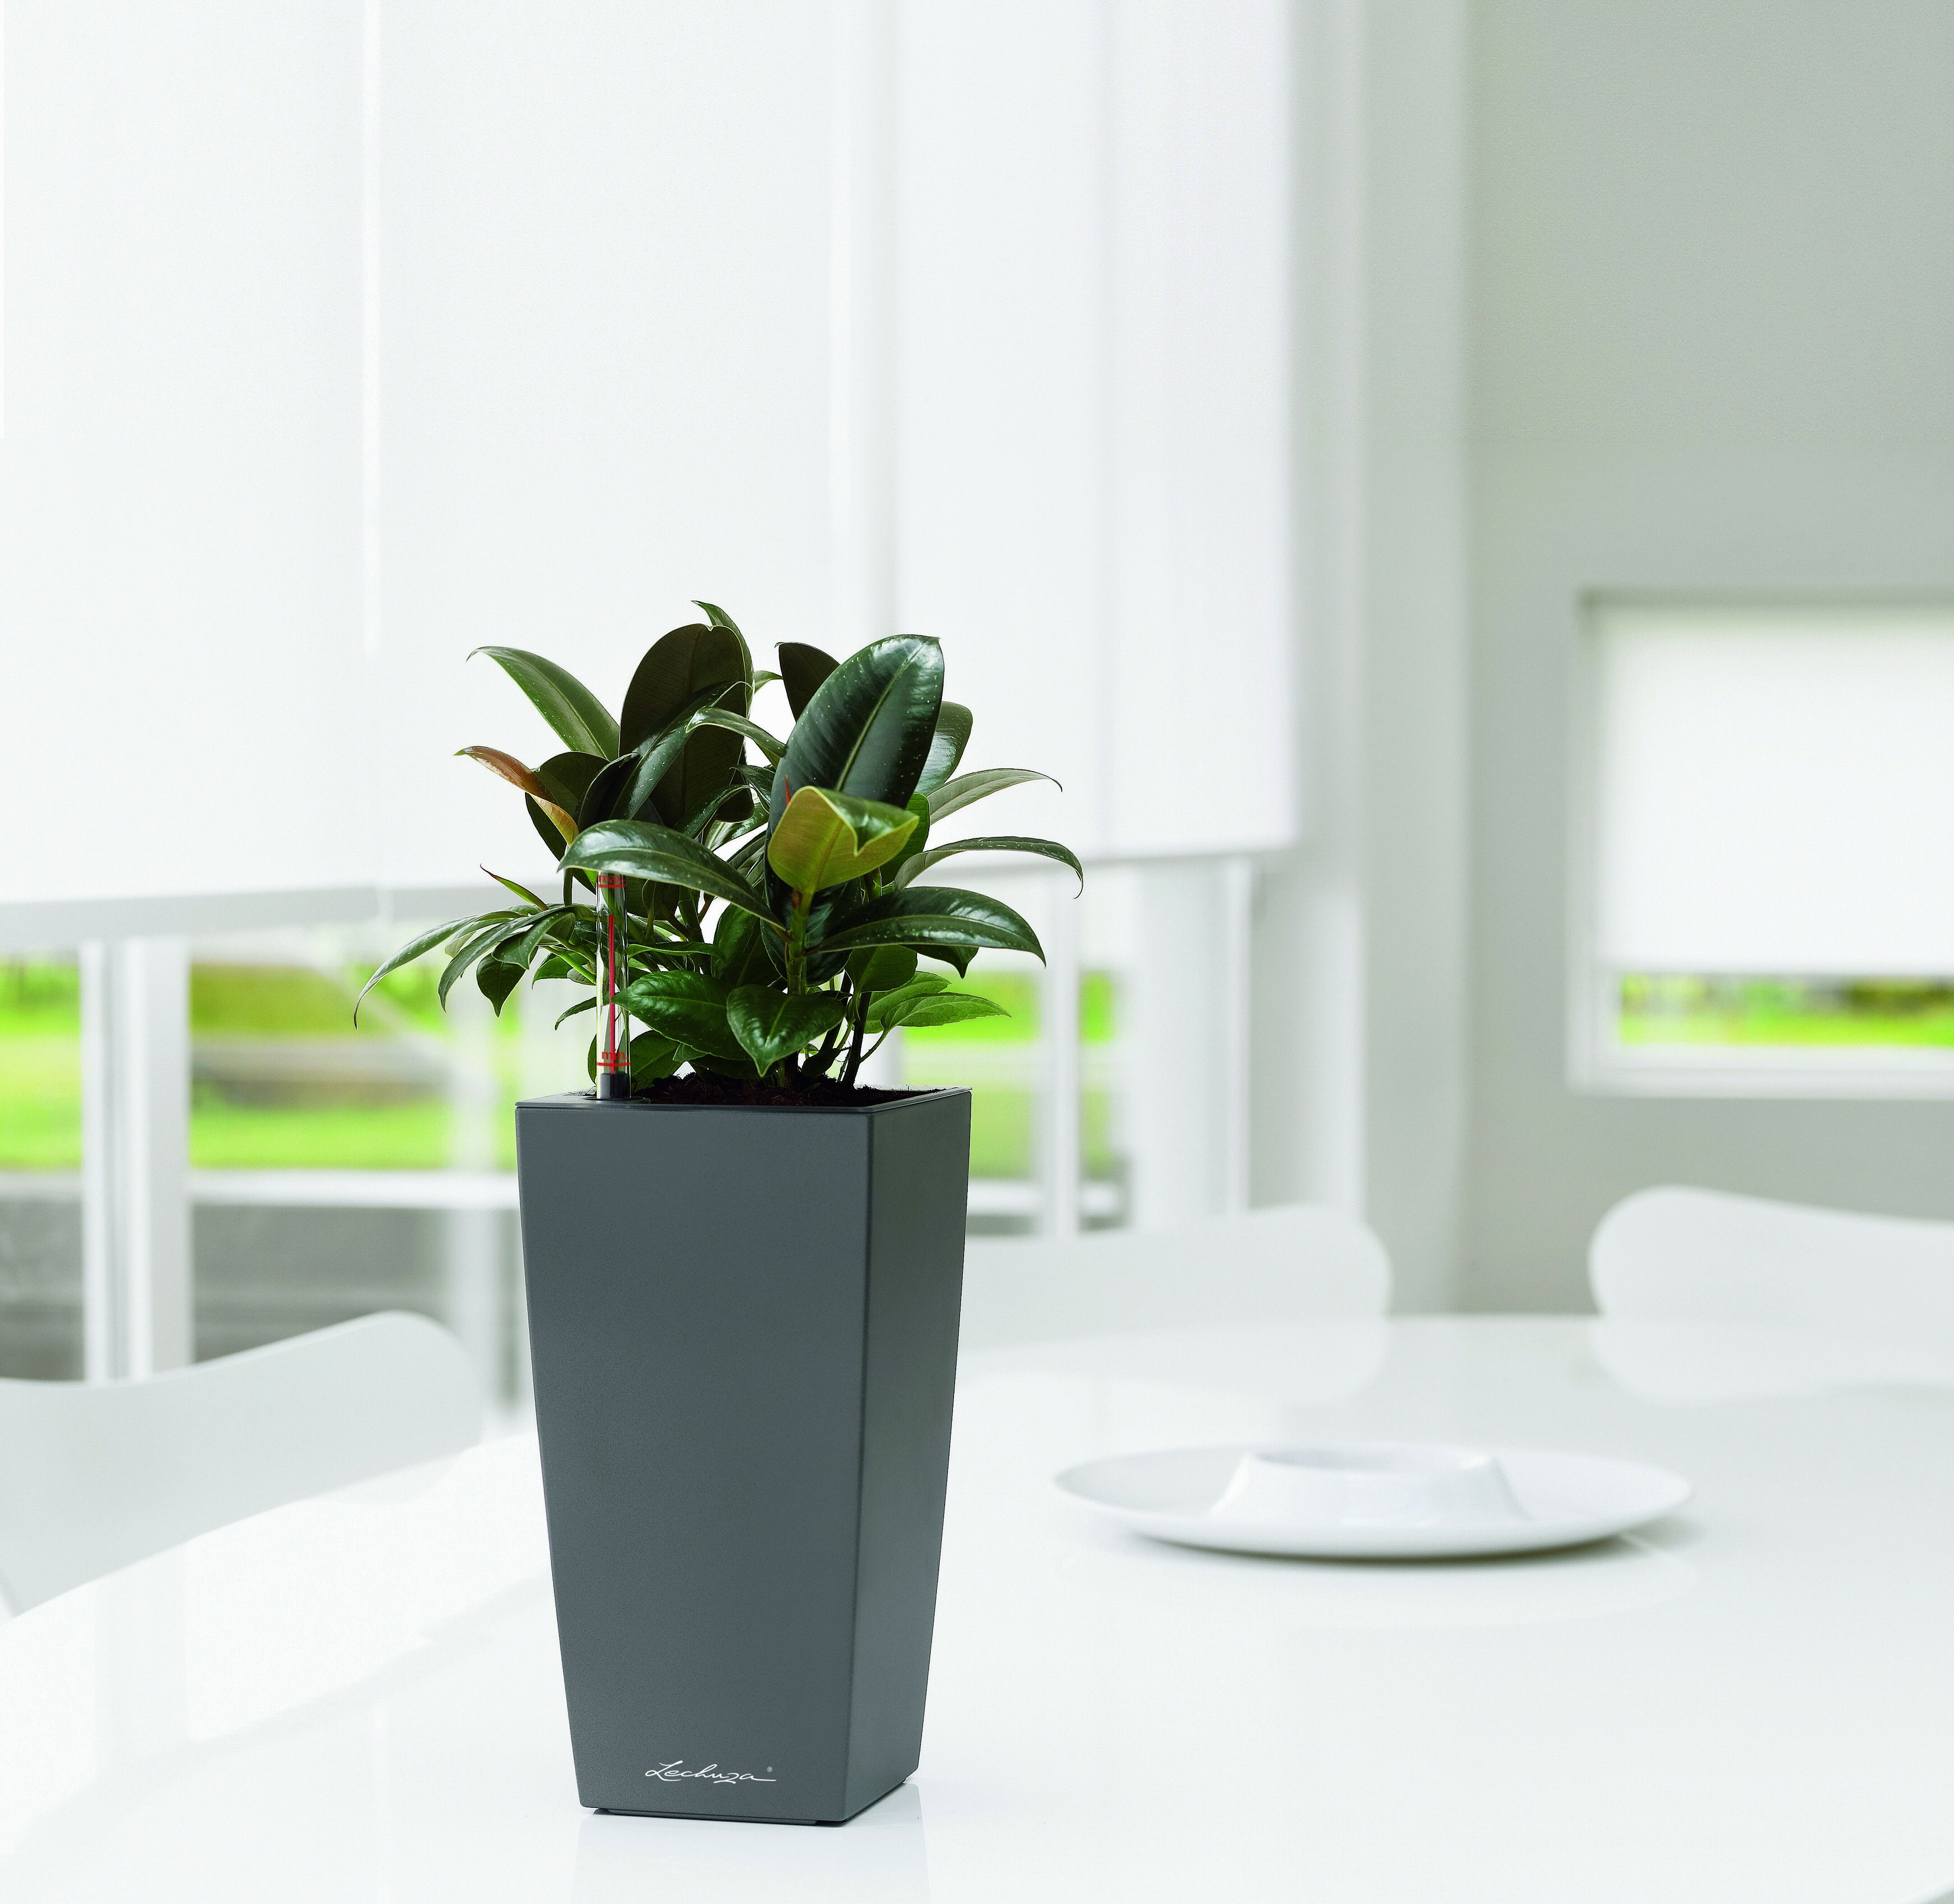 Lechuza maxi cubi self watering planter metropolitan wholesale metropolitan wholesale - Lechuza self watering planter ...